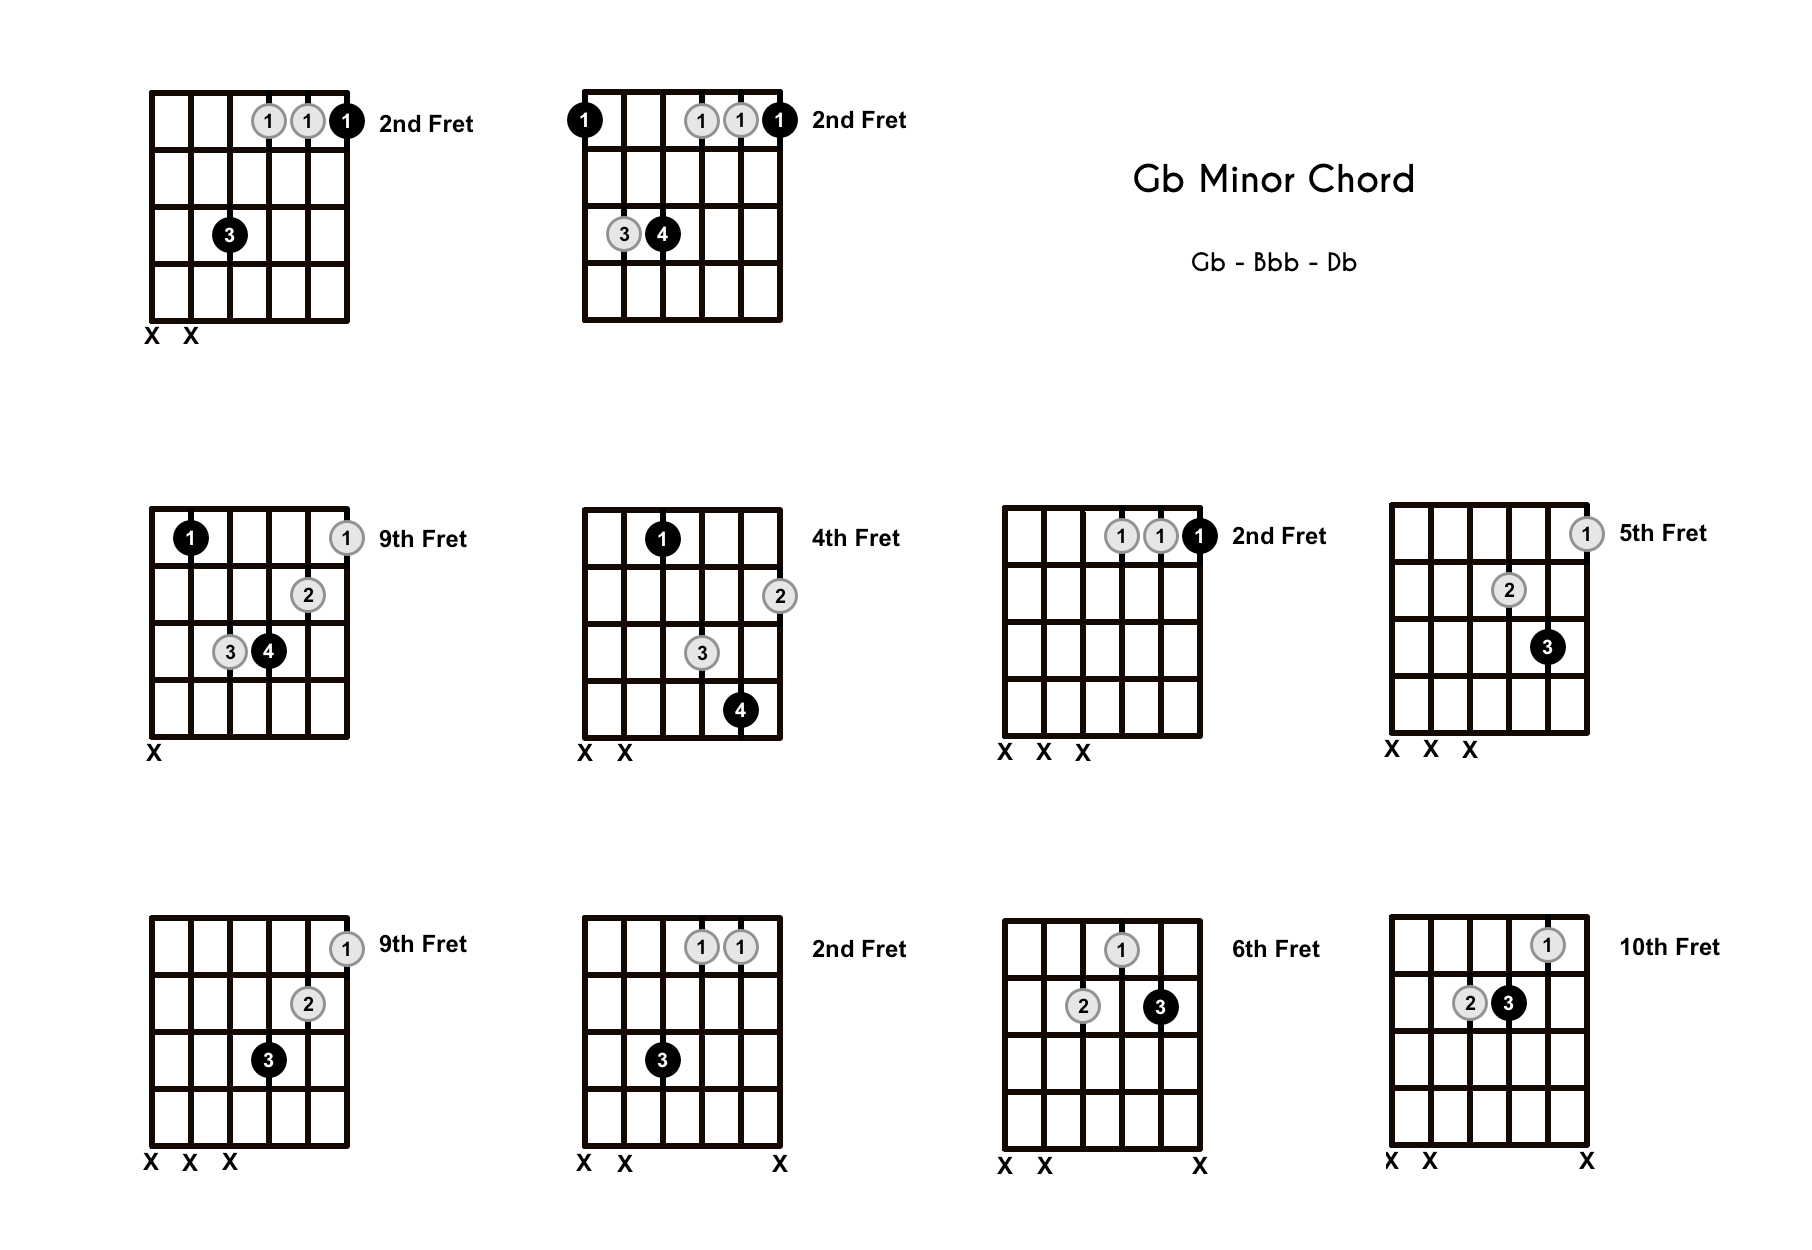 Gbm Chord on the Guitar (G Flat Minor) – Diagrams, Finger Positions, Theory